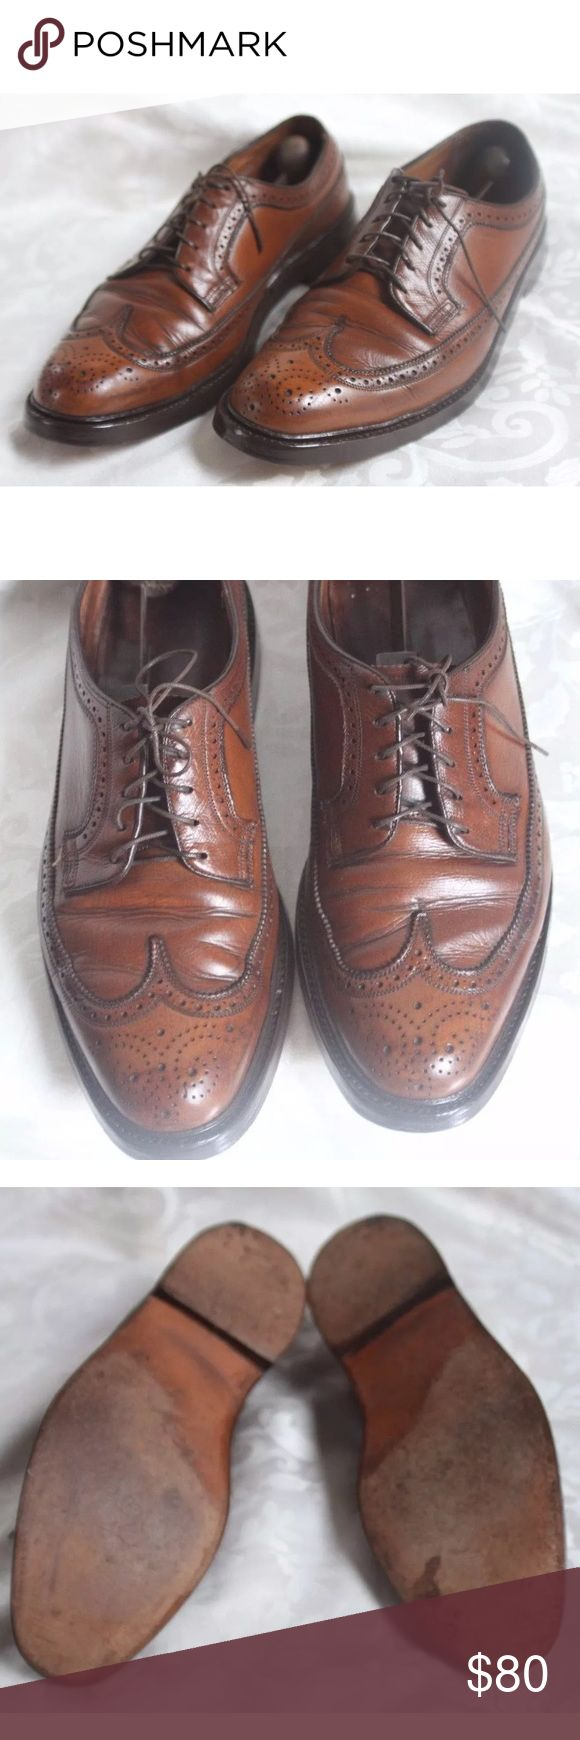 Vintage Florsheim Imperial 10 D Brown Dress Shoes Brand: Florsheim Imperial  	•	Size: 10 (Mens) 	•	Model N0: 93602 	•	Production Date: April (year is between 1957-1987) possibly before 1973 due to the V-Cleat being in flush with the shoe dates pre-1973) 	•	Details: 	◦	Cashmere Calf 	◦	Full Leather Lining  	◦	Double Leather Soles  	◦	Storm Welt 	◦	Leather Heels with V-Cleat  	•	Hand Stained Brown Longwing Shoe 	•	Great condition!! Florsheim Shoes Oxfords & Derbys